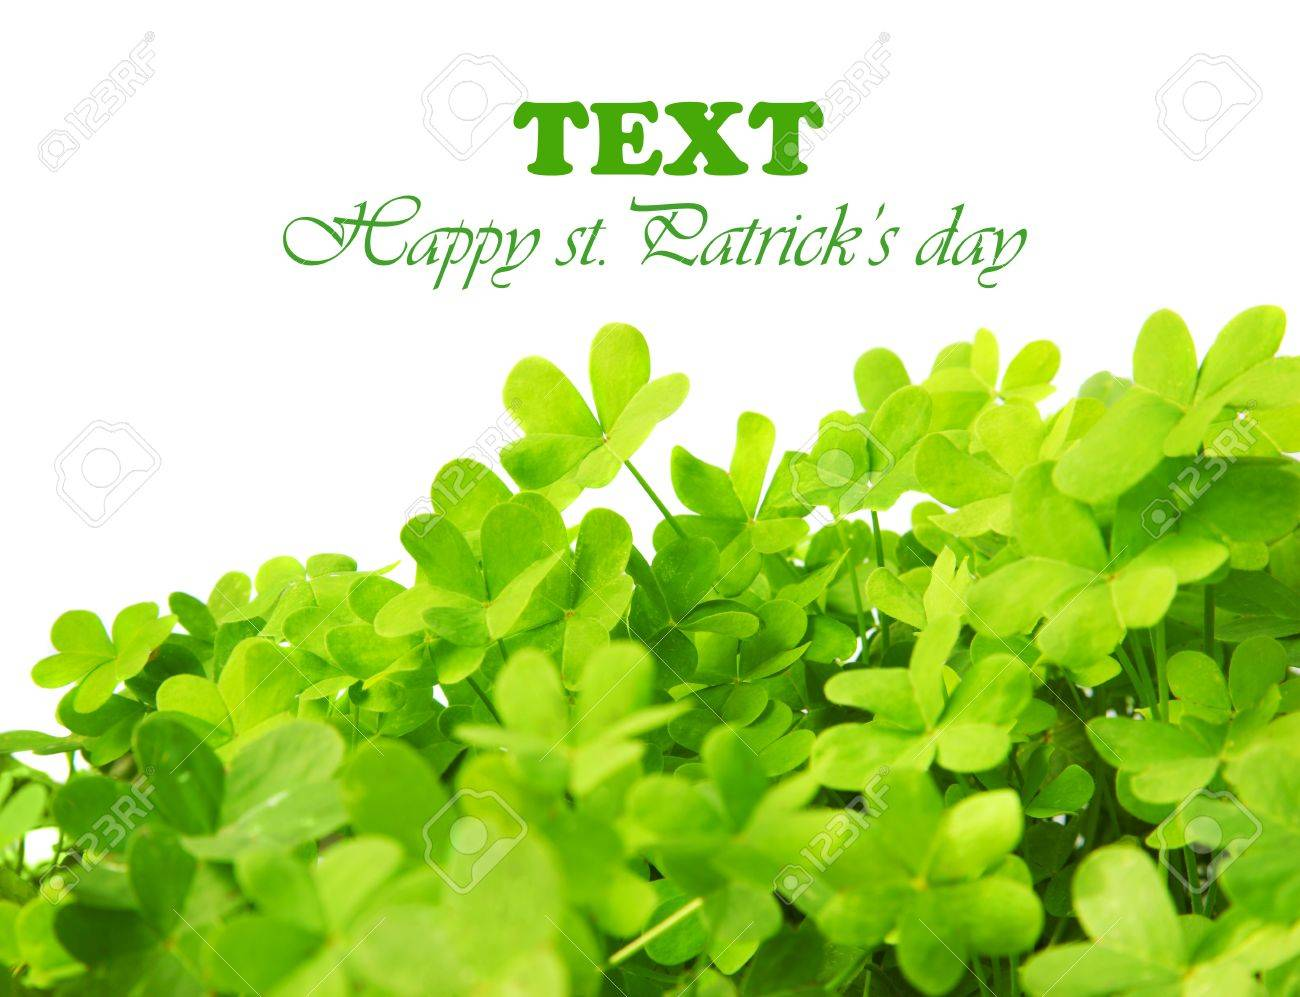 Green clover holiday border, st.Patrick's day decoration isolated on white background with text space Stock Photo - 8968118